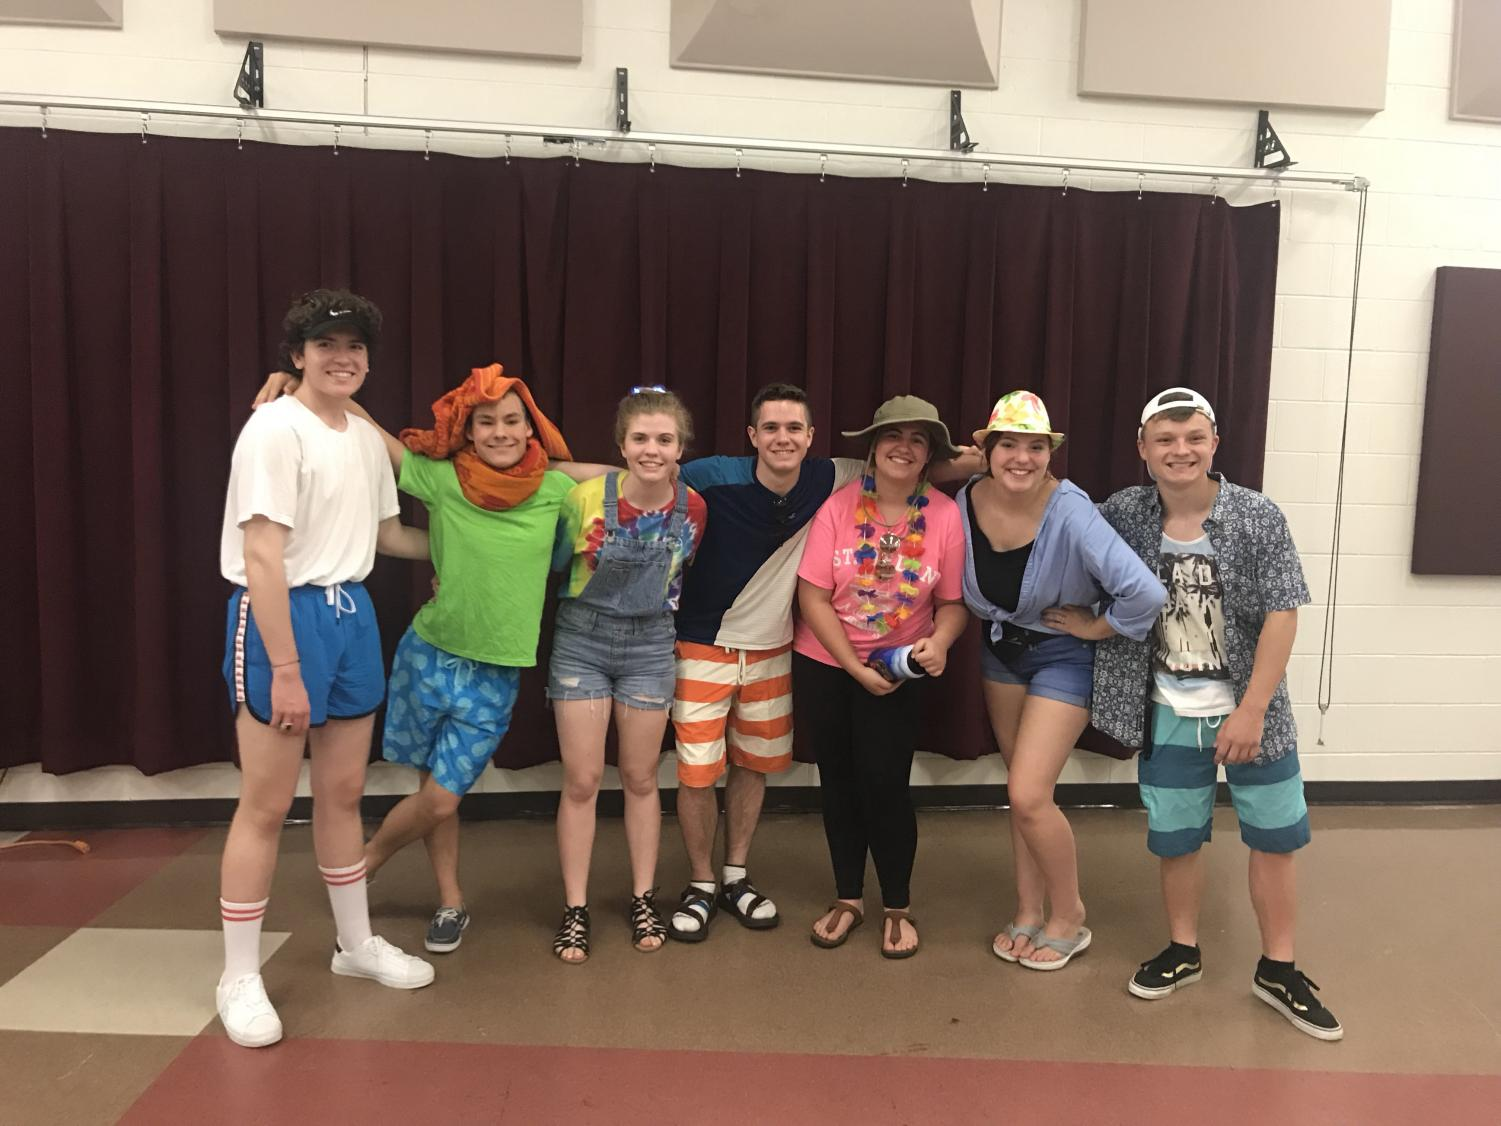 Pictured left to right, senior Isaac Reid, sophomore Charlie Marsh, junior Sydney Dudley, senior Elliot Hoinville, sophomore Maren Case, sophomore Ellie Mancina, and senior Ryan Daniel, all pose together, dressed in the theme of the night, summer wear. All photos by Kylie Clifton